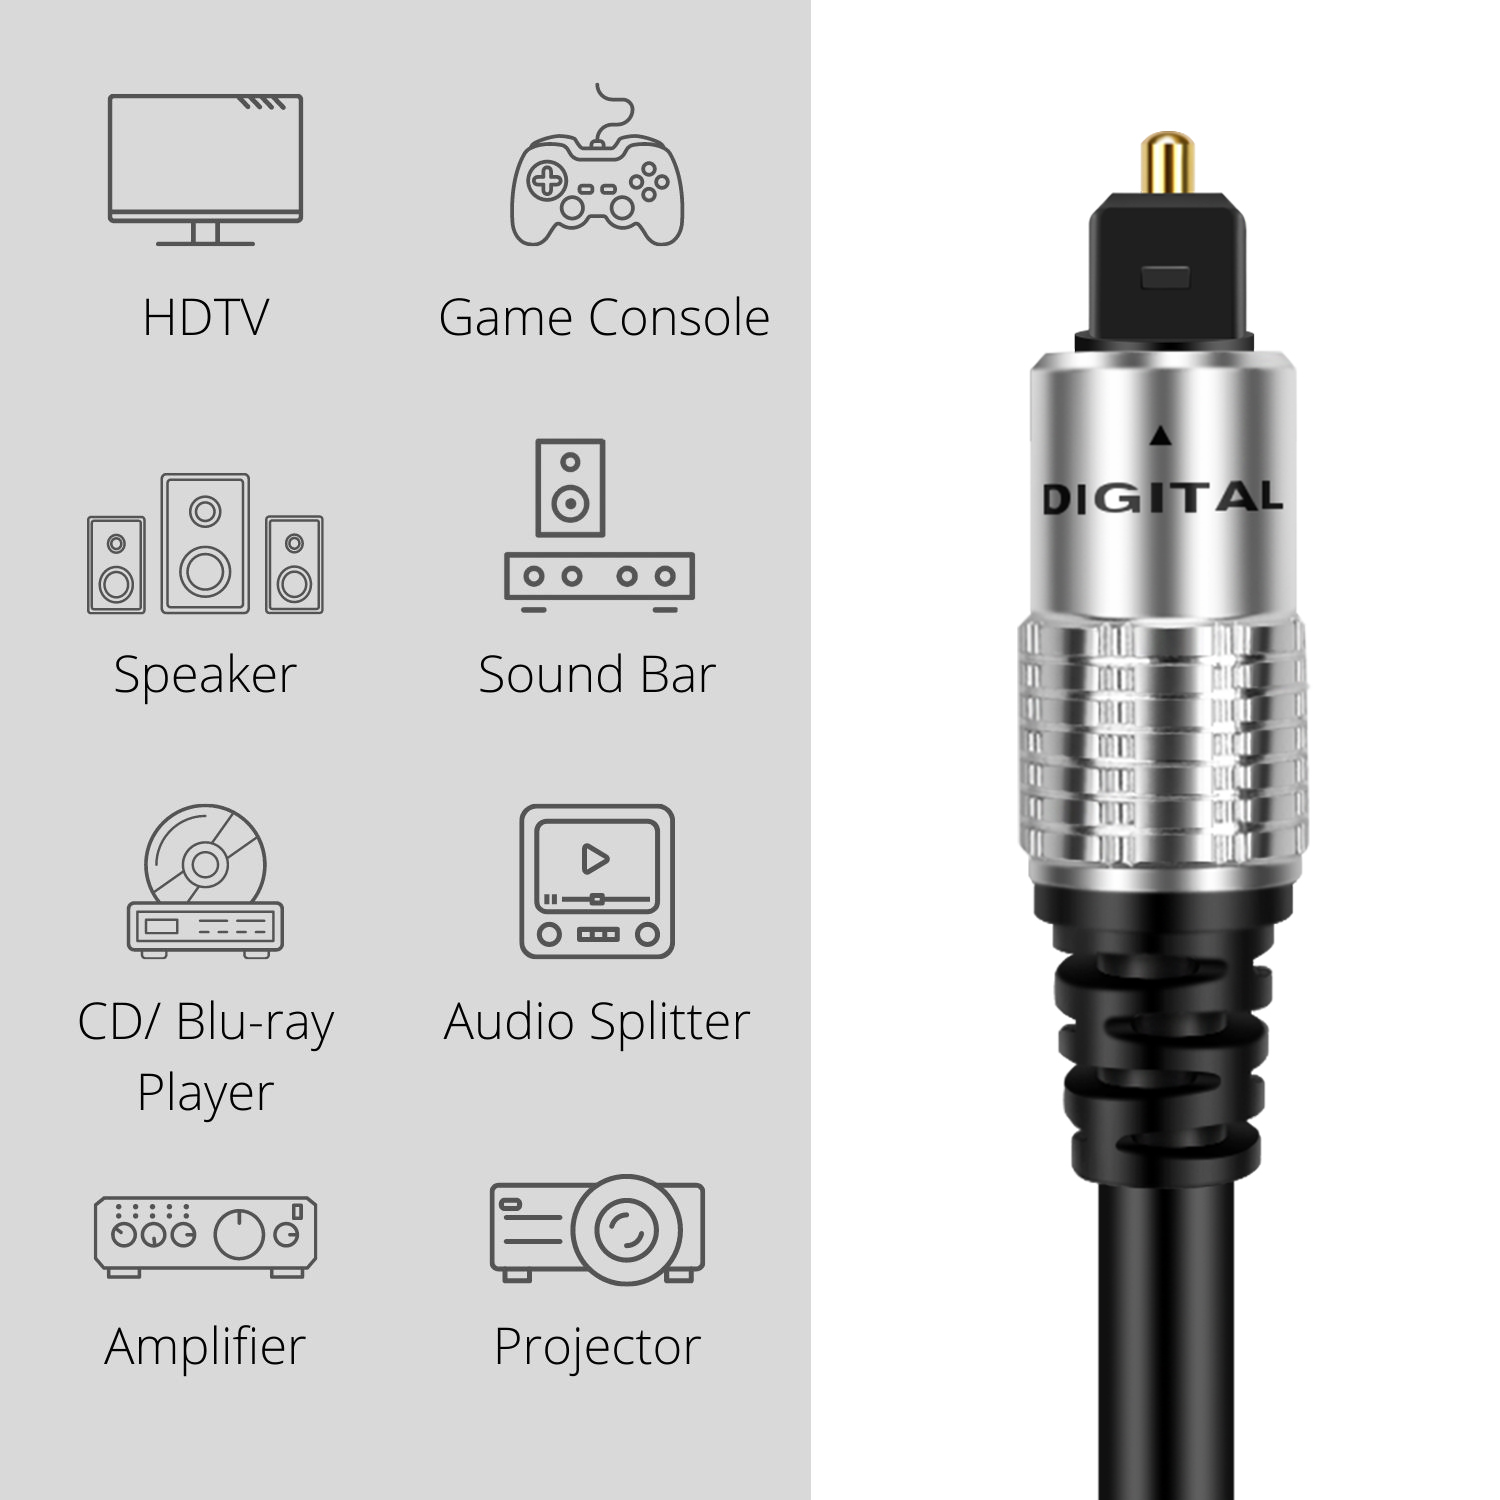 Digital Audio Connector : Mini toslink to digital optical audio cable ft